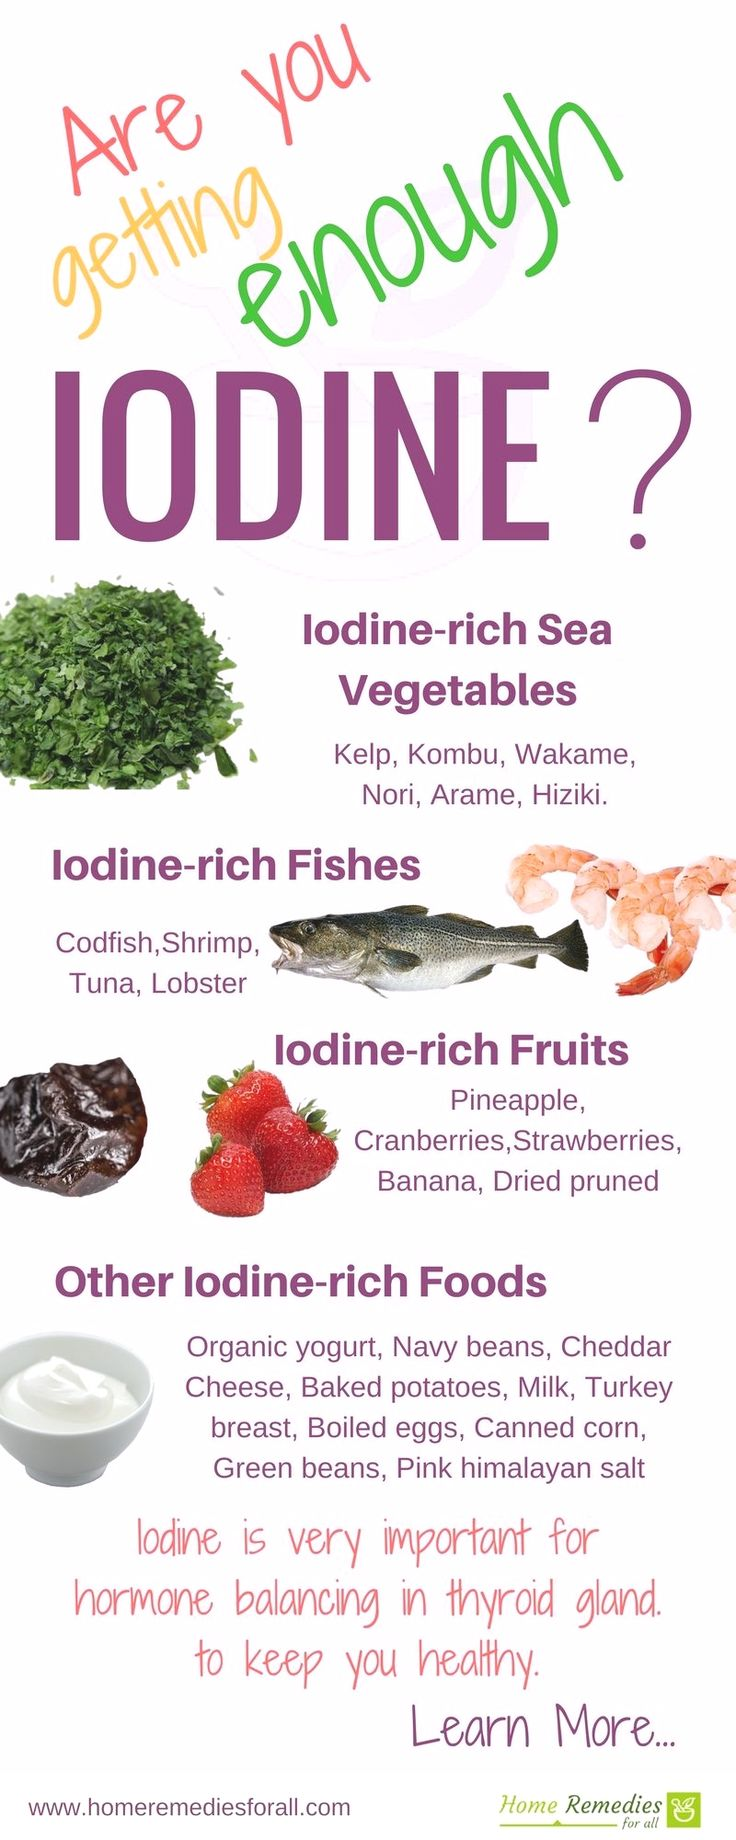 Iodine rich foods image by skorupskaya.toma on Health ...